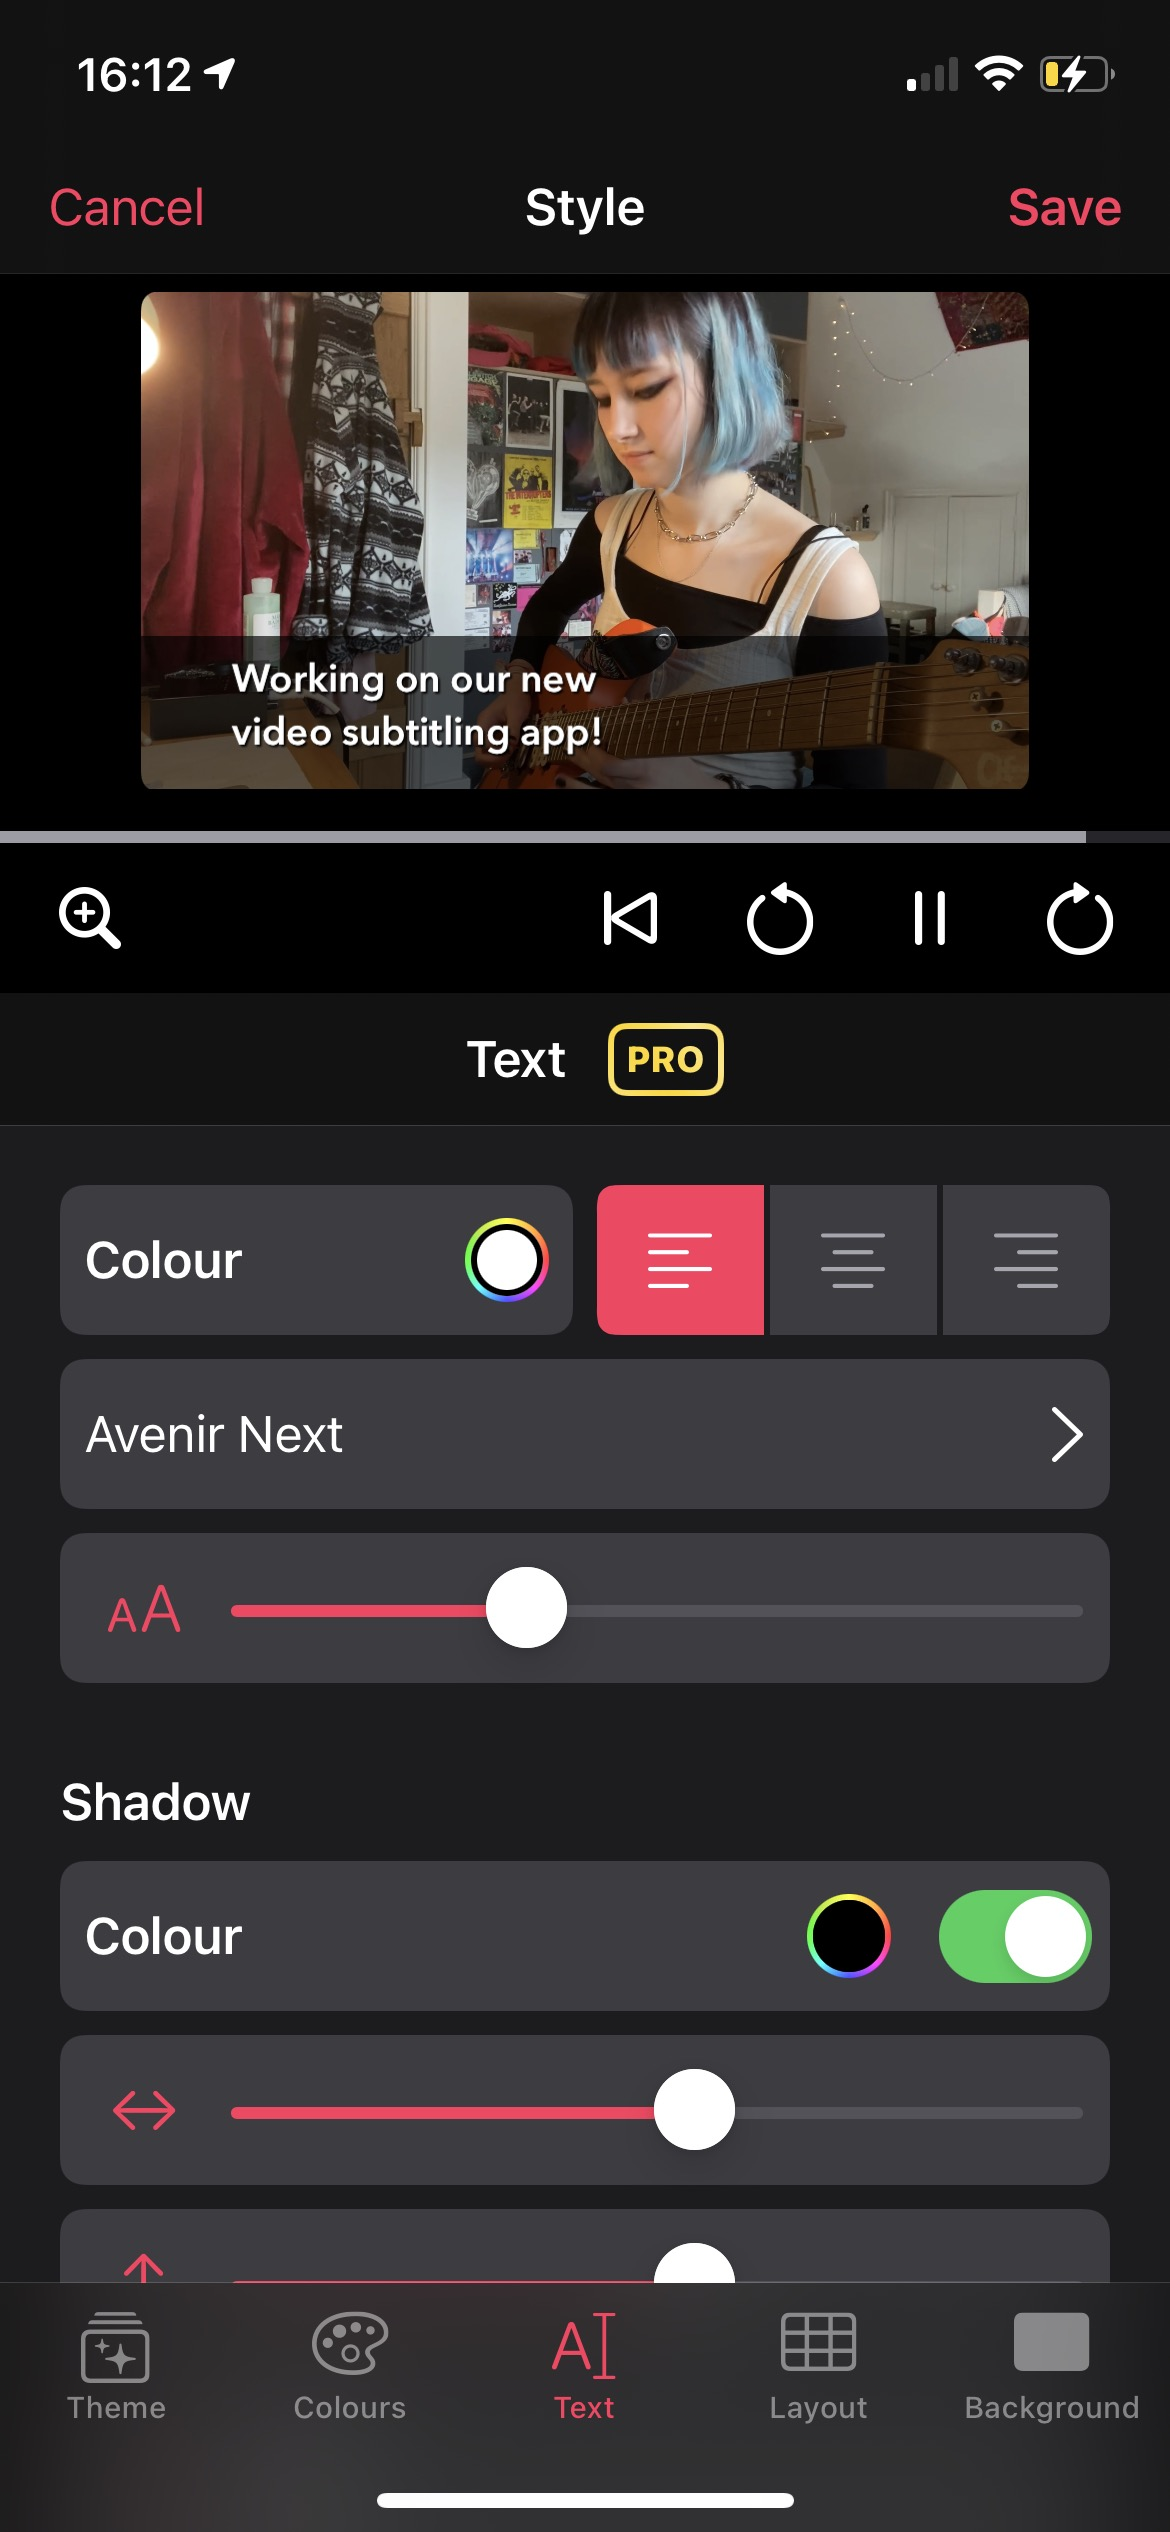 Screenshot of a the new styling UI showing a video and the subtitle text formatting options